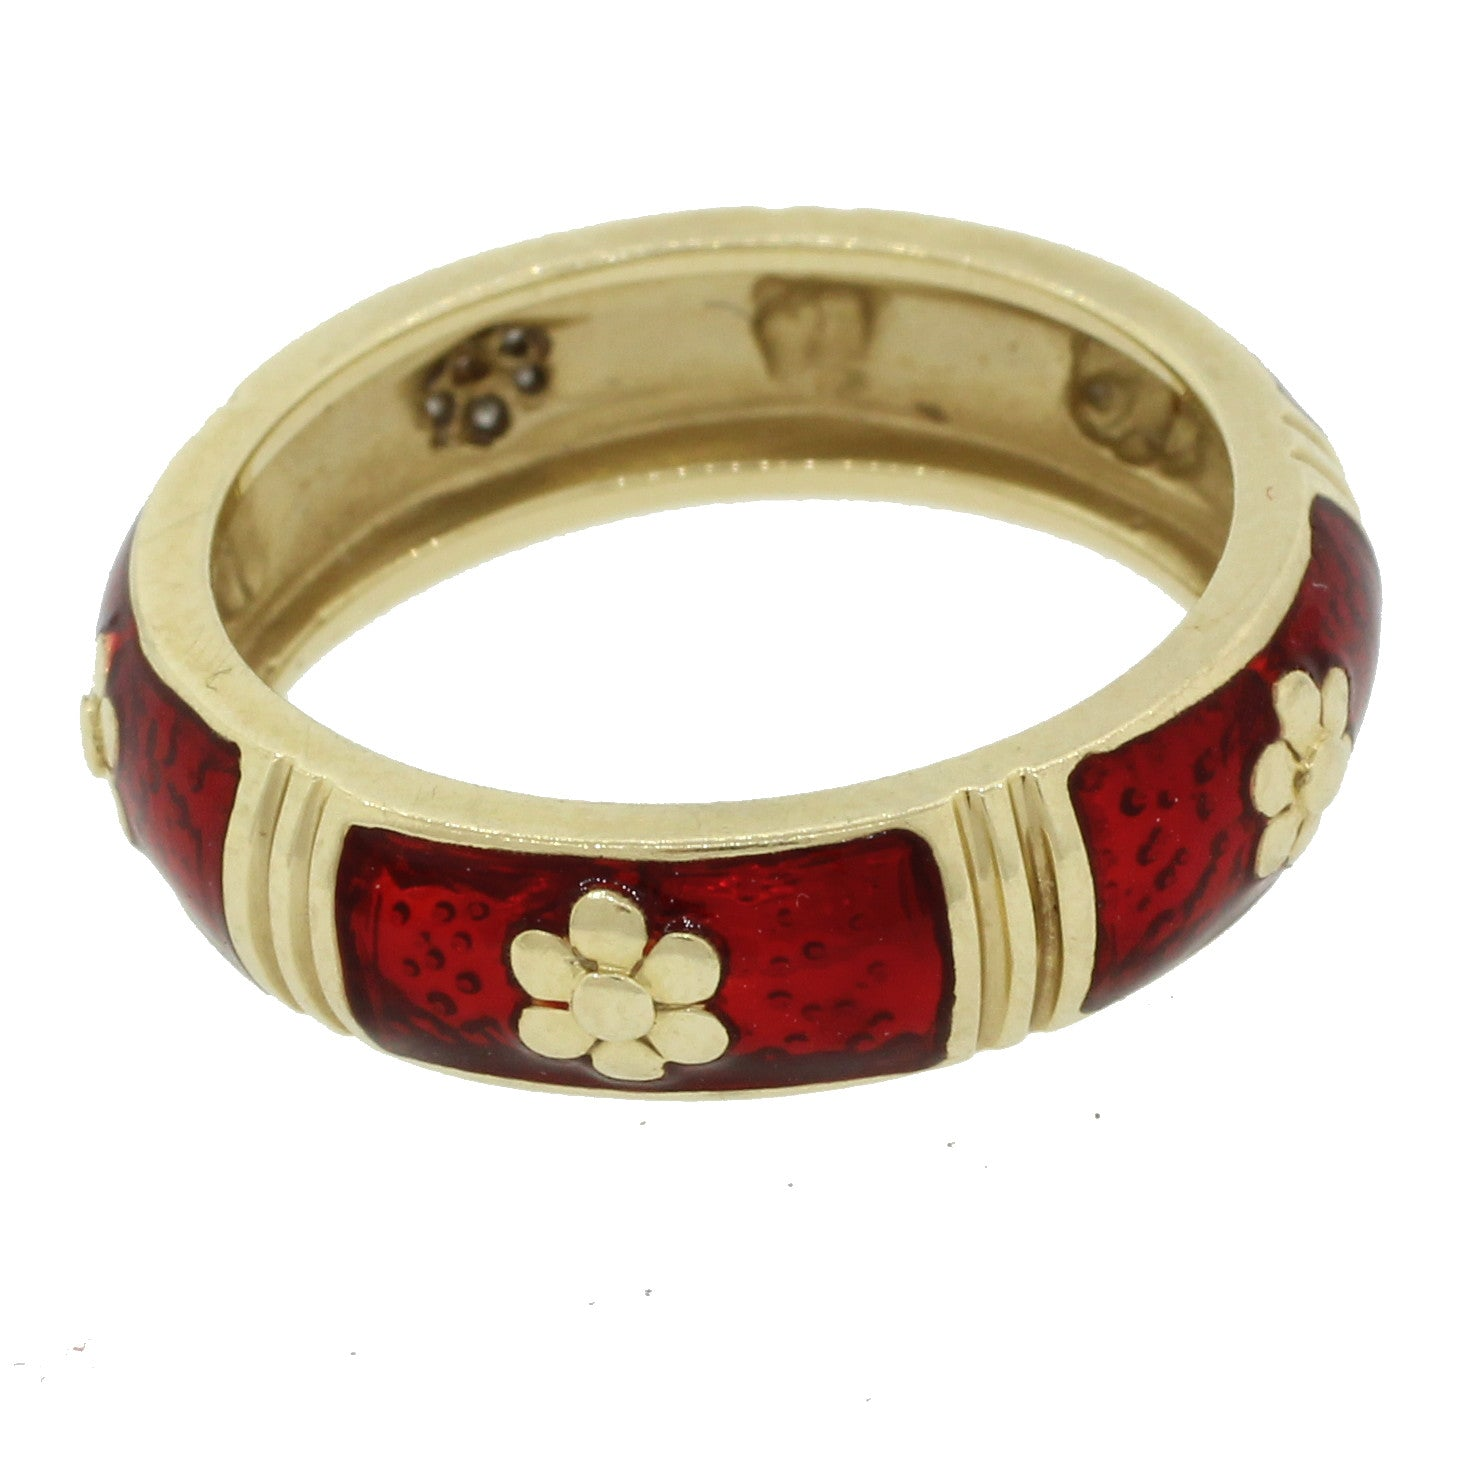 Vintage Estate 14k Solid Yellow Gold Diamond Red Enamel Wedding Band Ring Italy